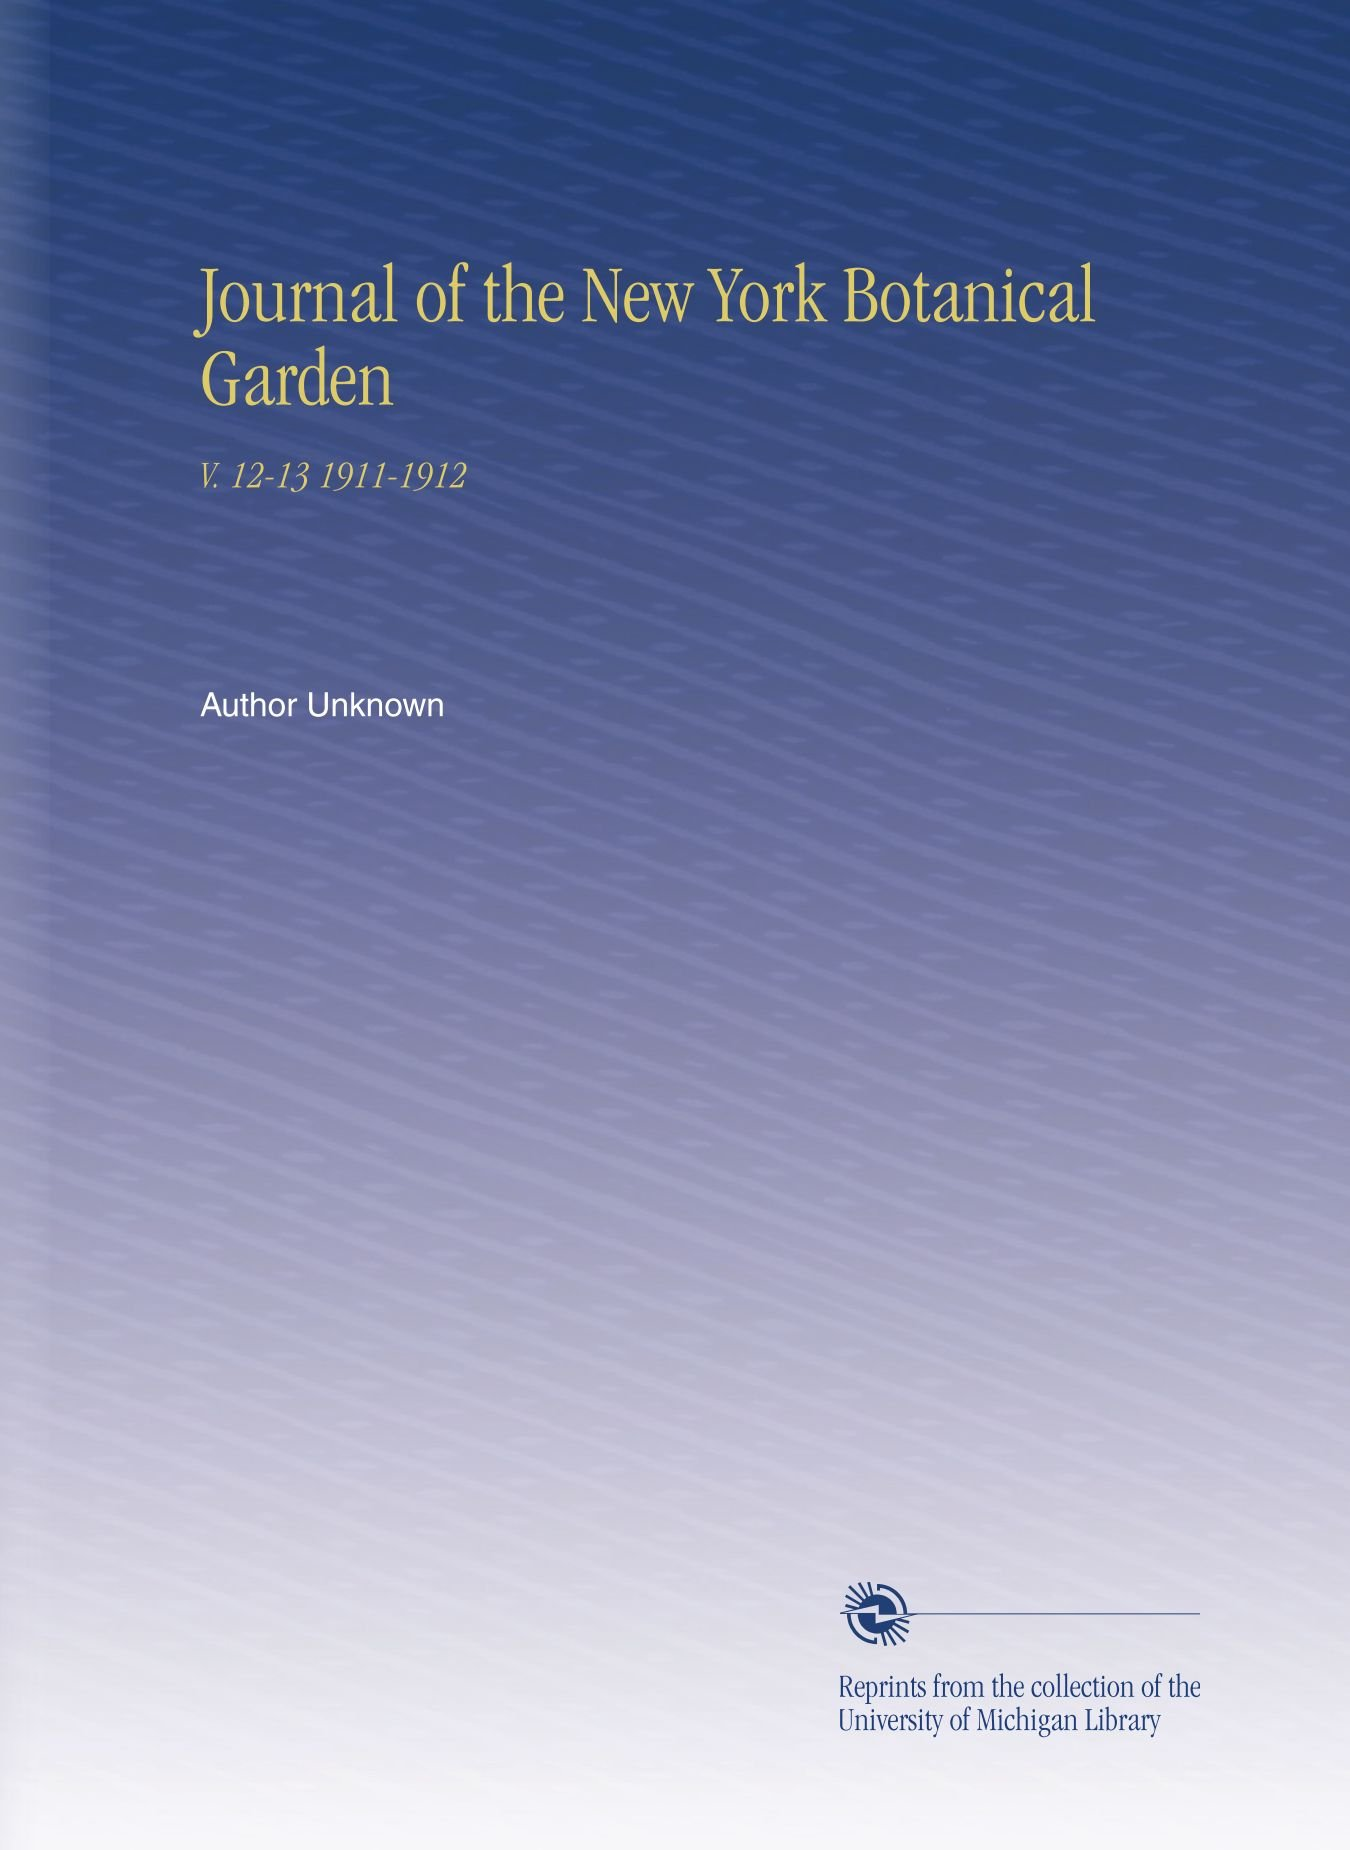 Download Journal of the New York Botanical Garden: V. 12-13 1911-1912 pdf